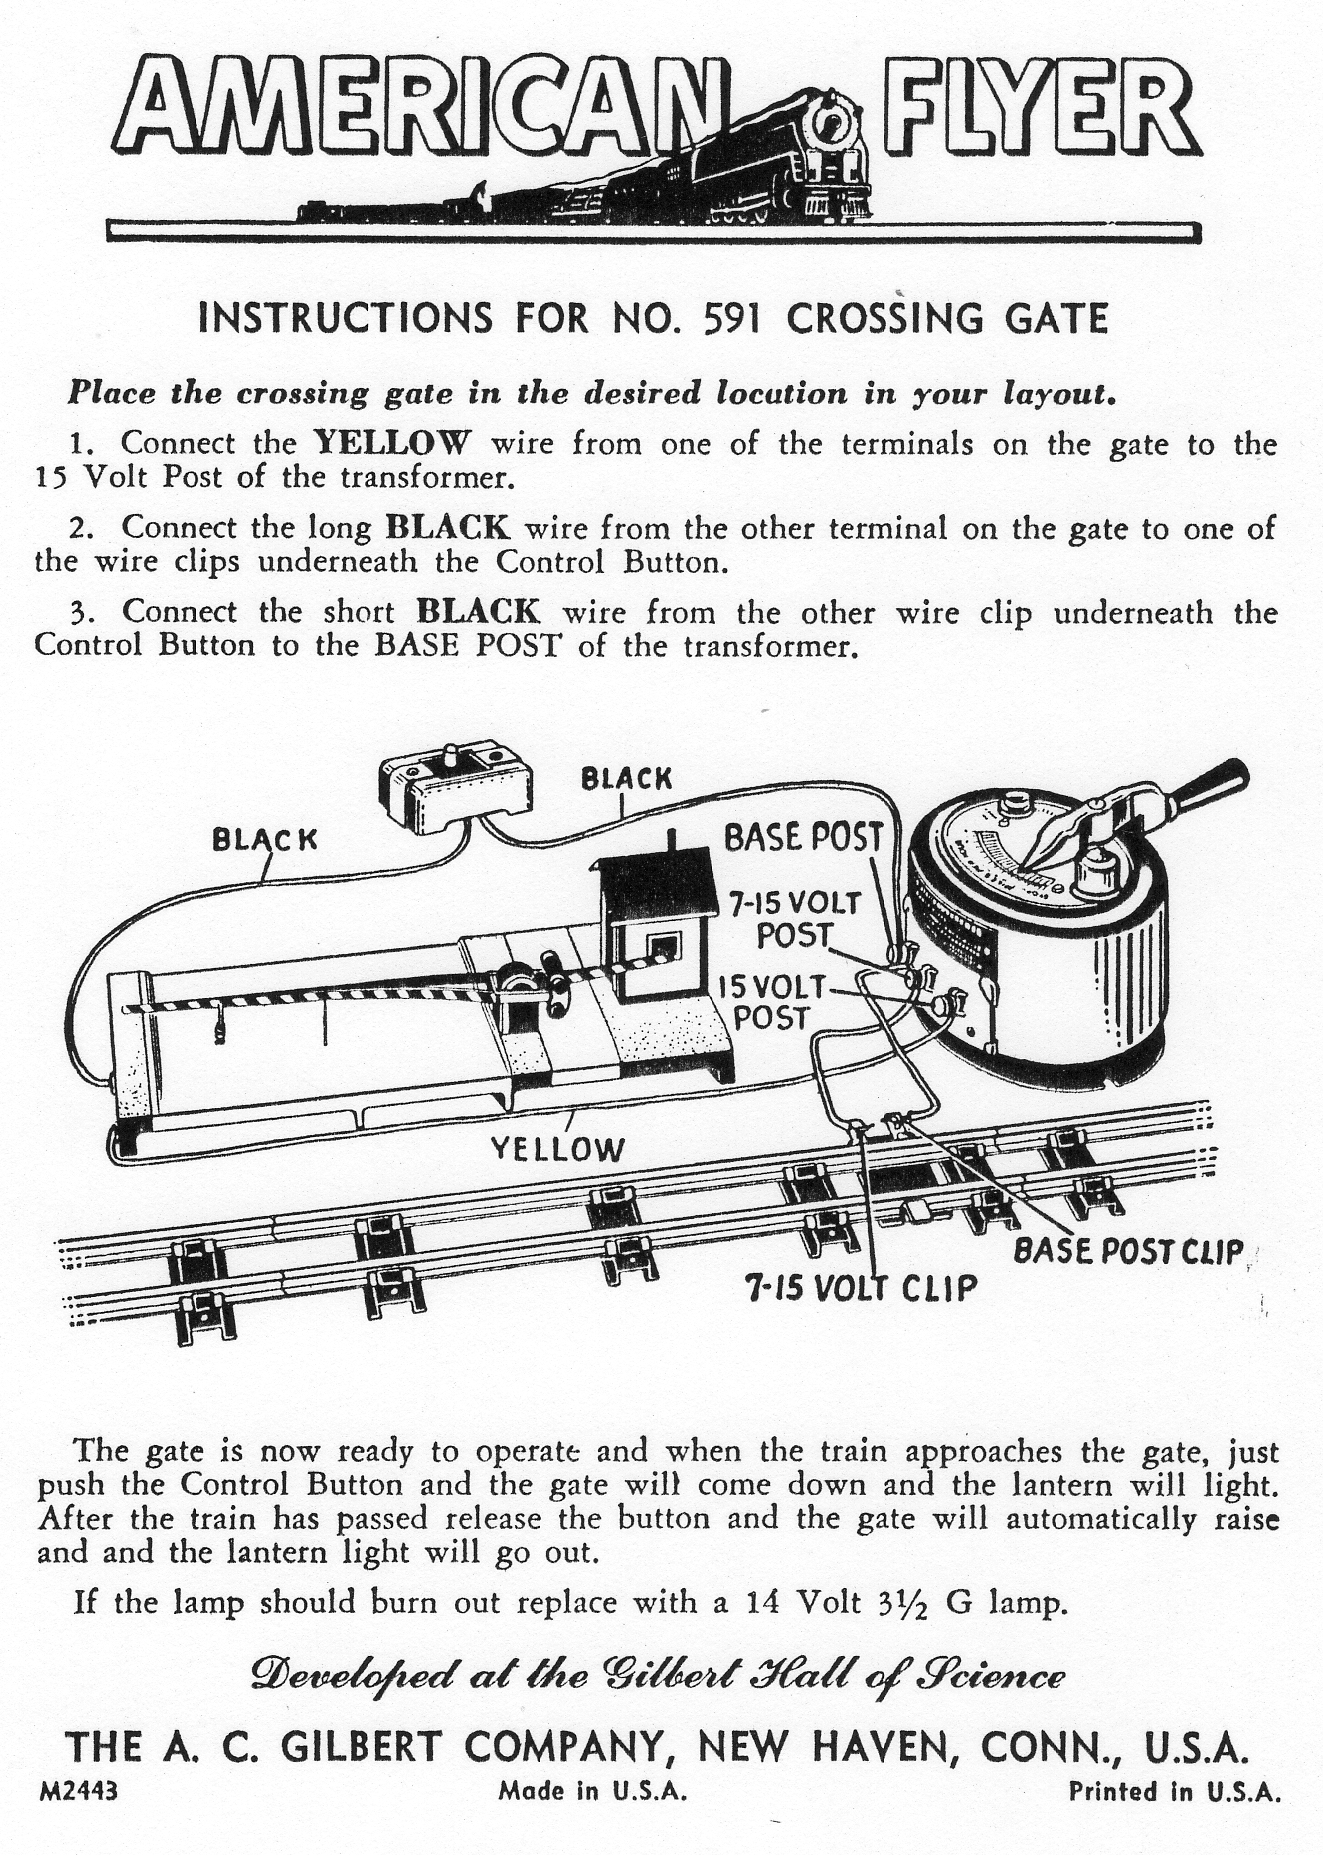 american flyer wiring instructions traindr instructions for no 591 crossing gate